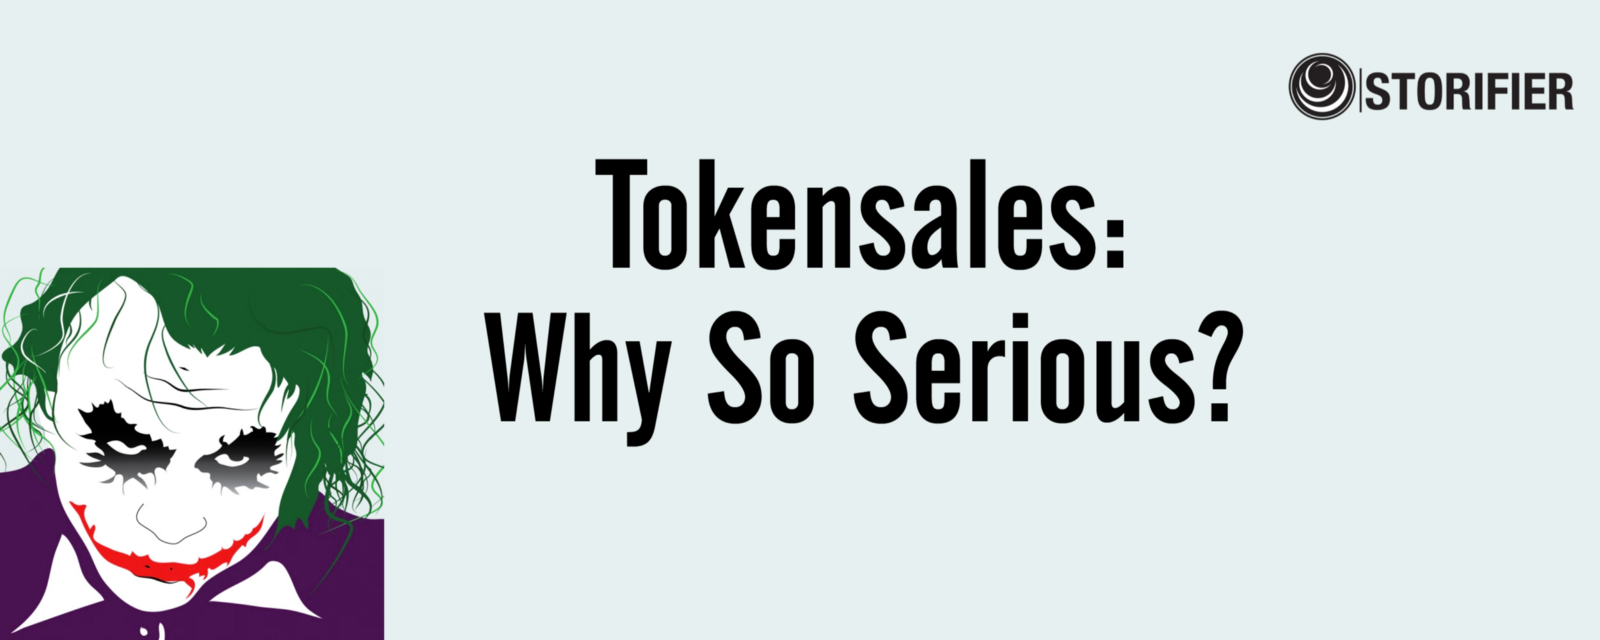 /not-so-serious-look-at-tokensales-5d891991df31 feature image